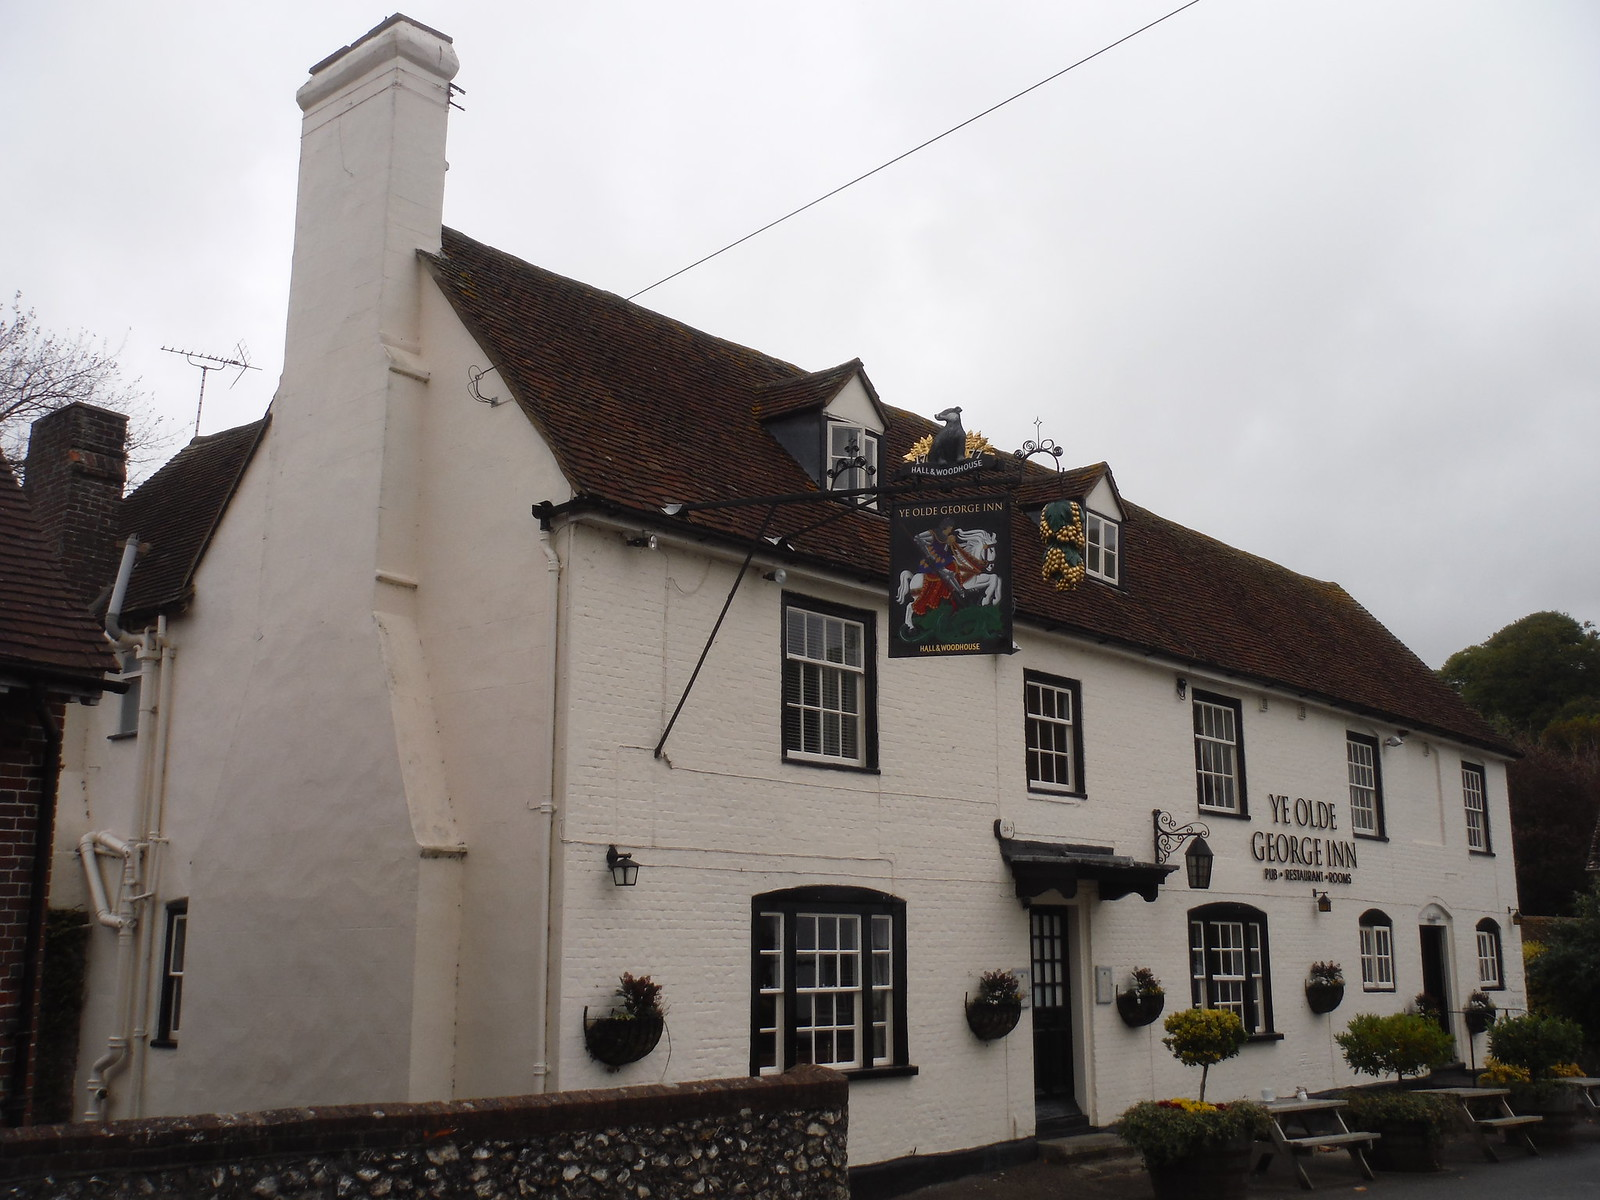 Ye Olde George Inn, East Meon SWC Walk 183 - South Downs Way Section 2: West Meon to Petersfield (East Meon Lunch Pubs Diversion)